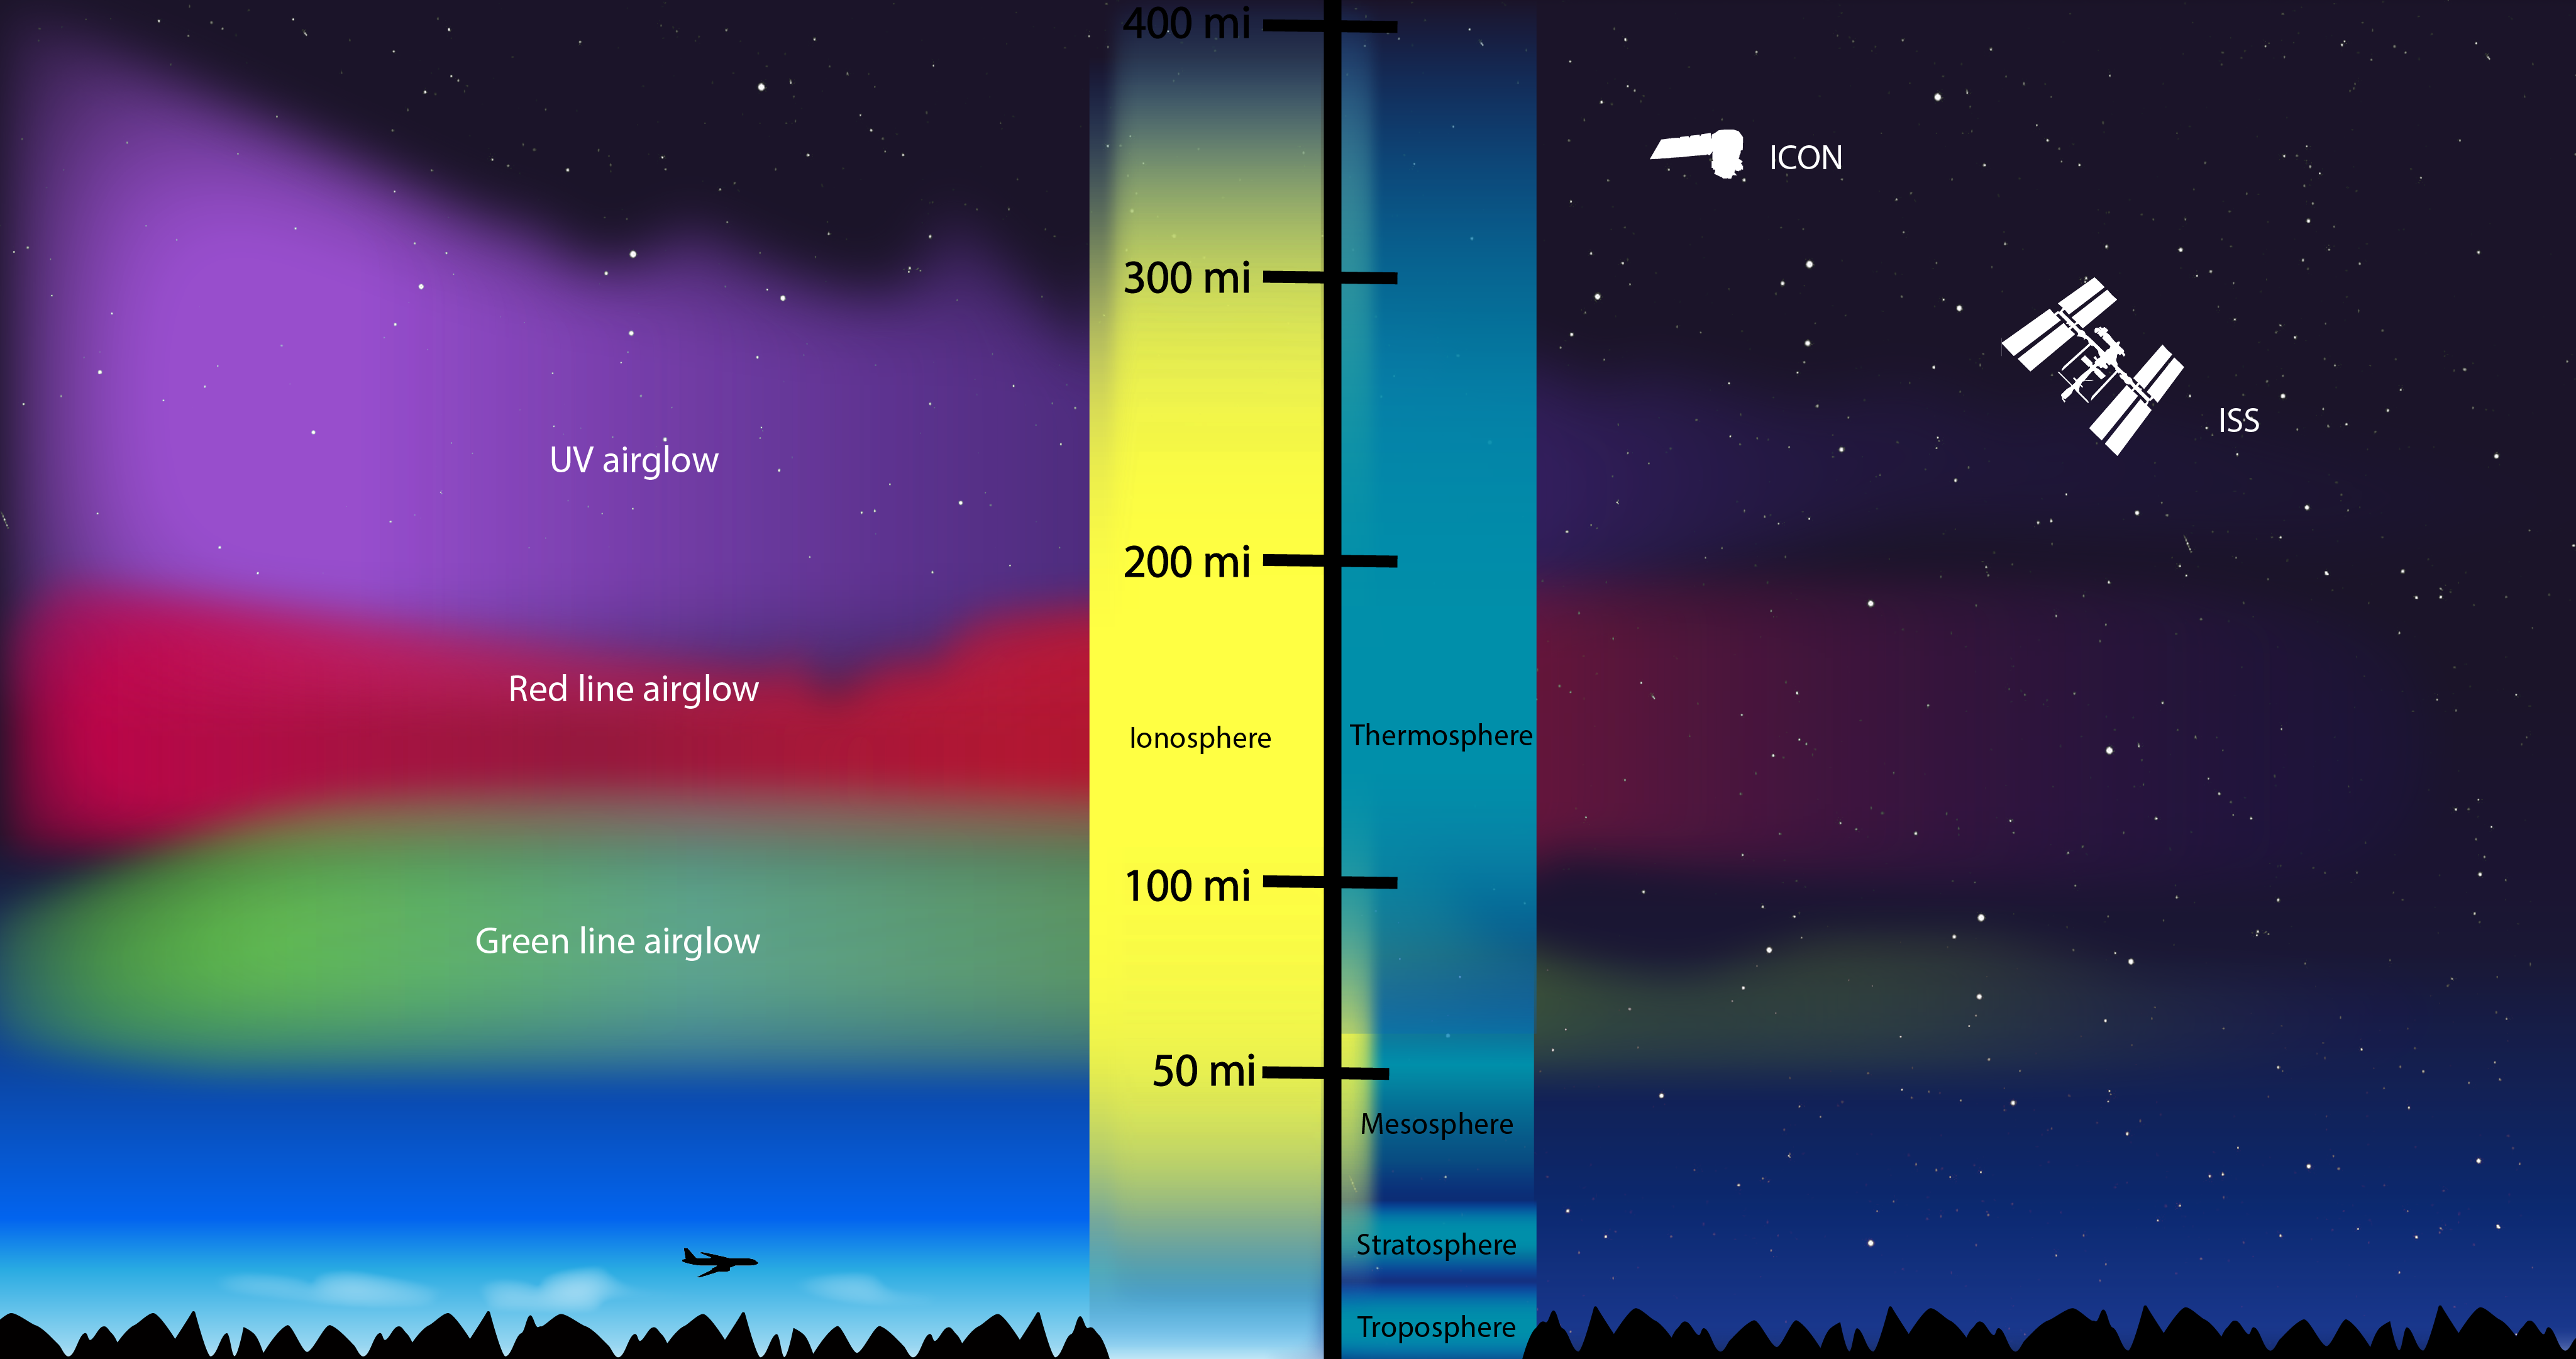 Revolutions in understanding earths interface to space nasa cross section diagram of earths atmosphere with names of different layers indicated ccuart Image collections